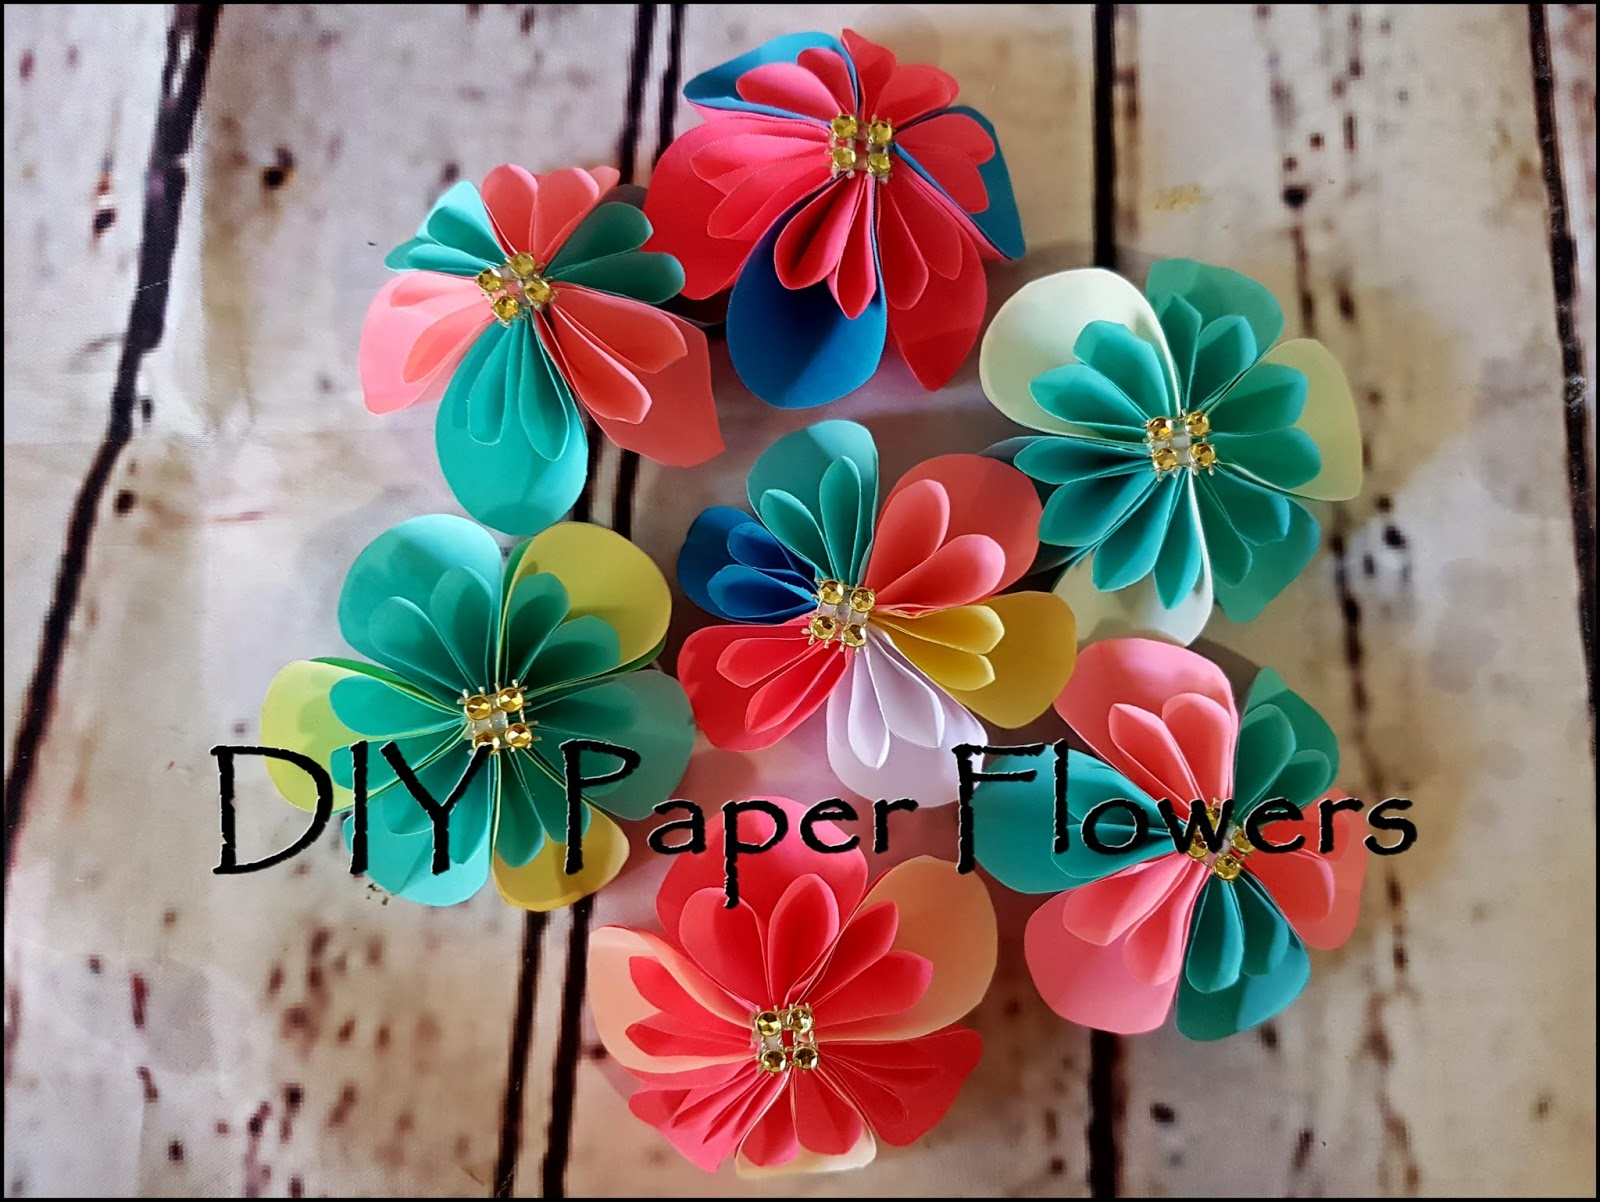 Diy paper flowers aaichi savali paper flowers are the perfect touch to any event gift or home decor piece they wont die because they were never alive to begin with and your colors mightylinksfo